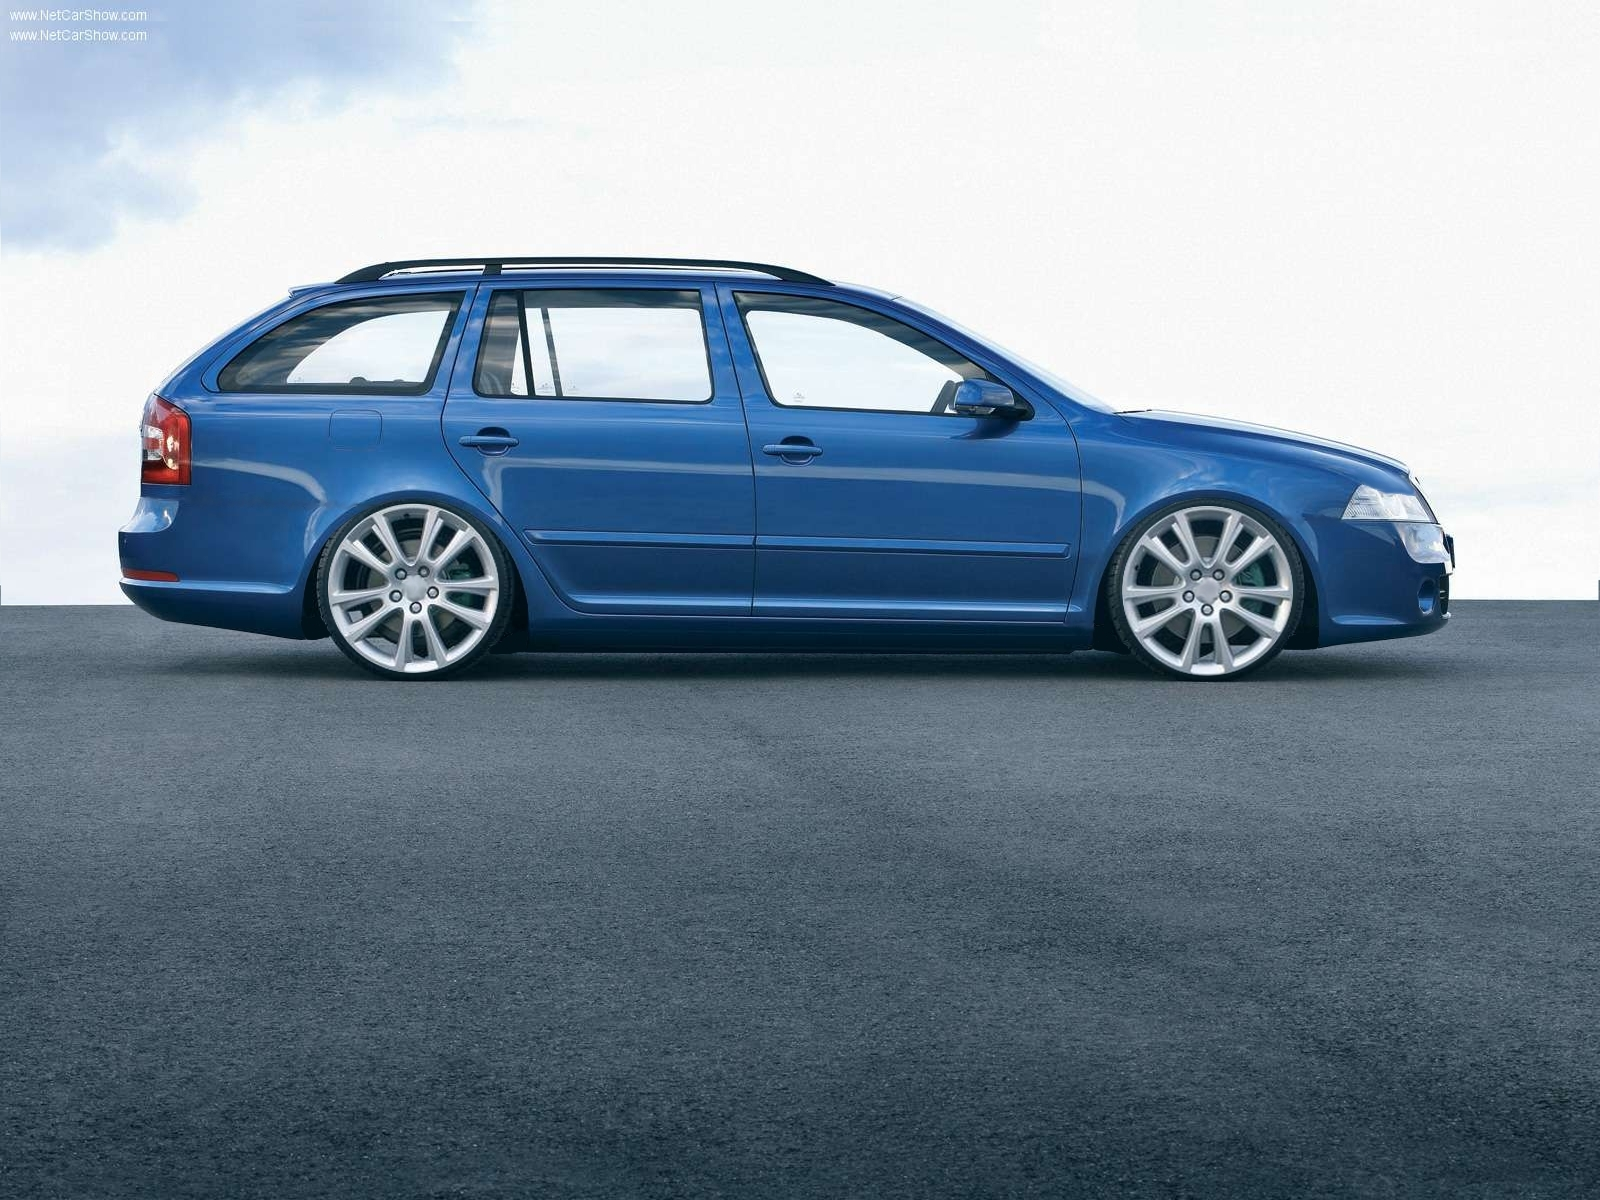 View Of Skoda Octavia Rs Photos Video Features And Tuning Of Vehicles Gr8autophoto Com